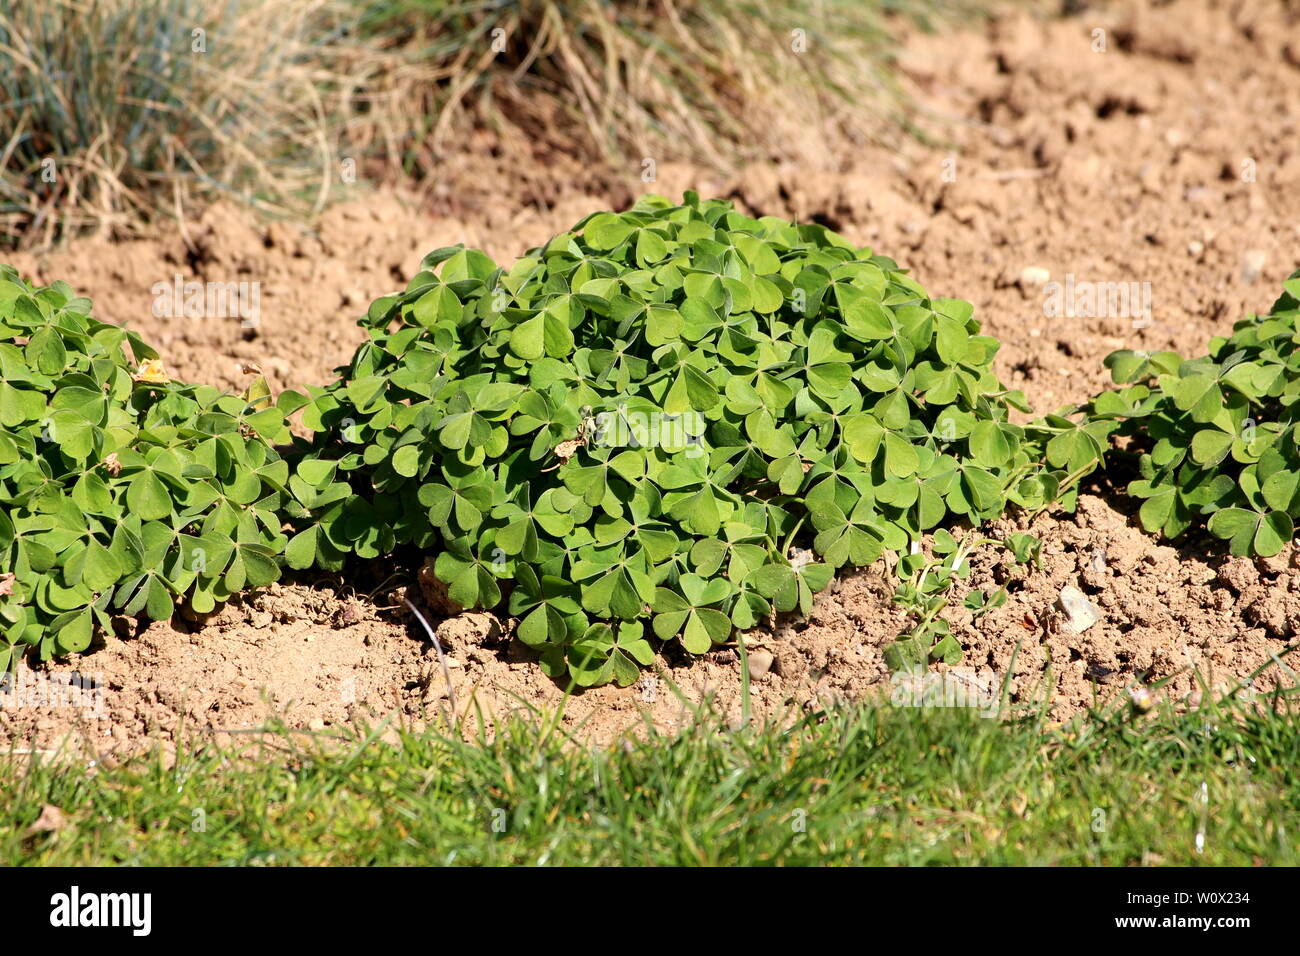 Densely planted dome shaped Clover or Trefoil flowering plants full of beautiful green leaves planted in a row surrounded with dry soil and grass - Stock Image